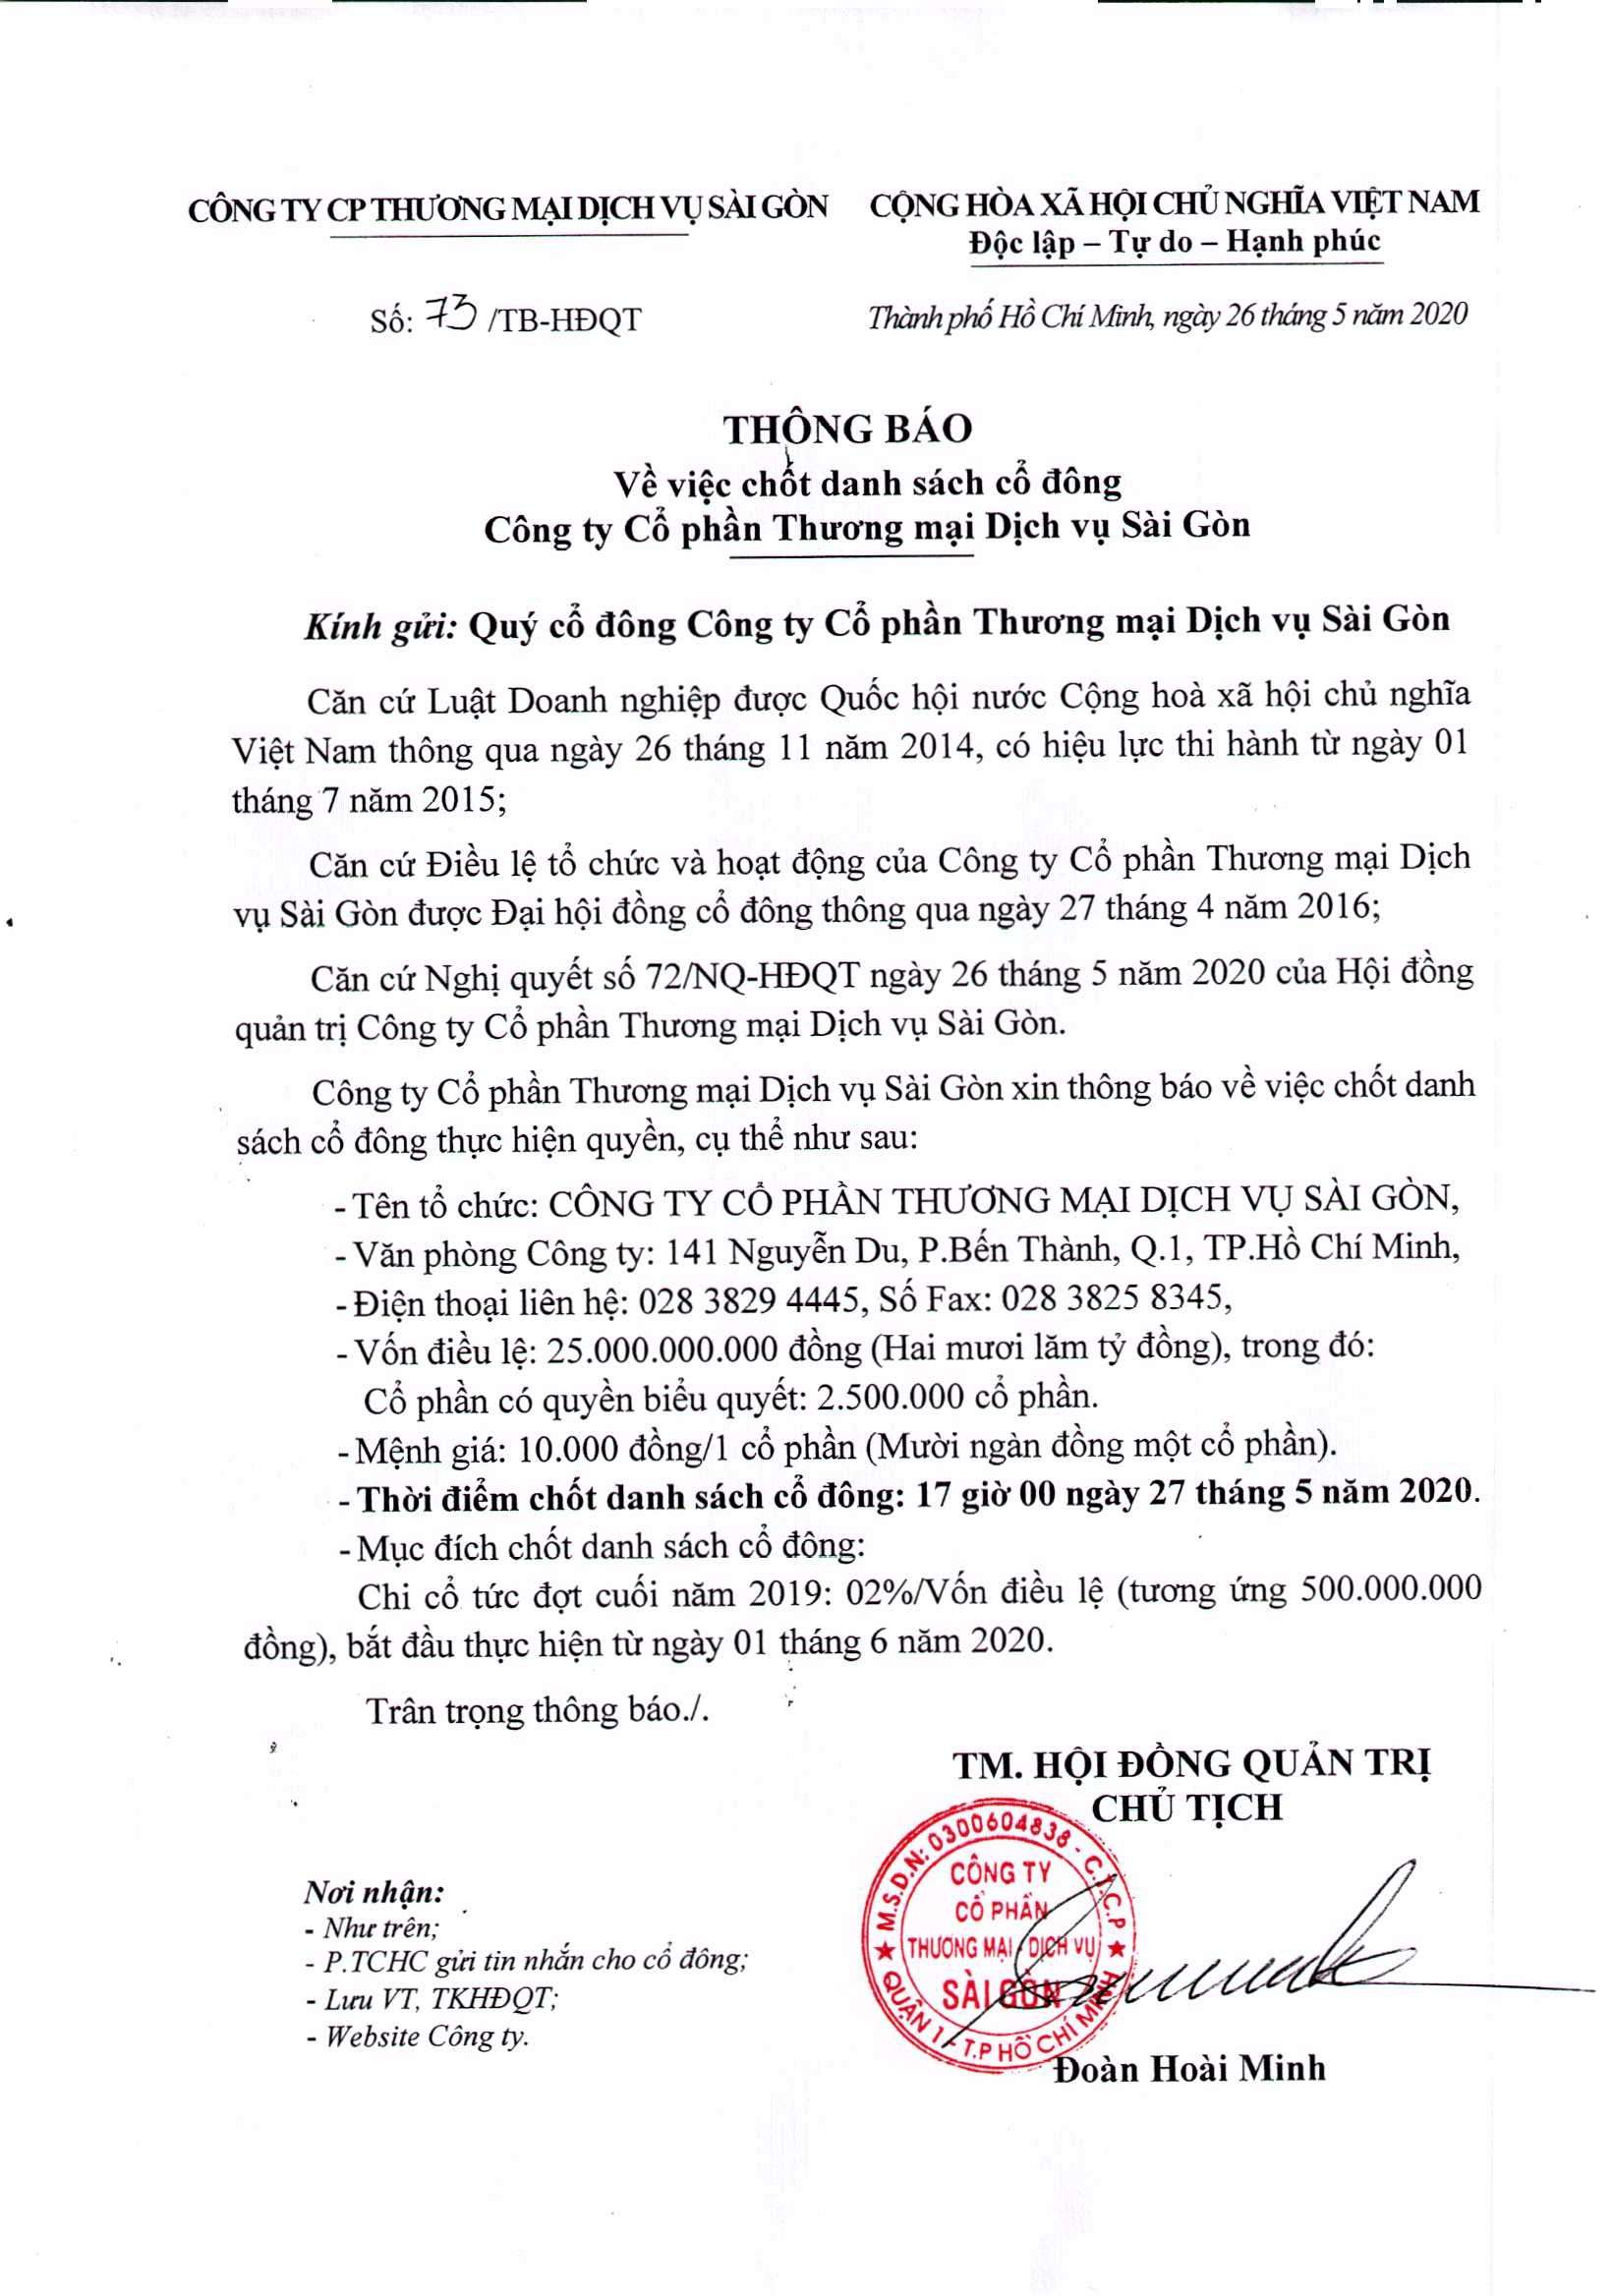 TB ve viec chot danh sach co dong ngsy 27-5-2020